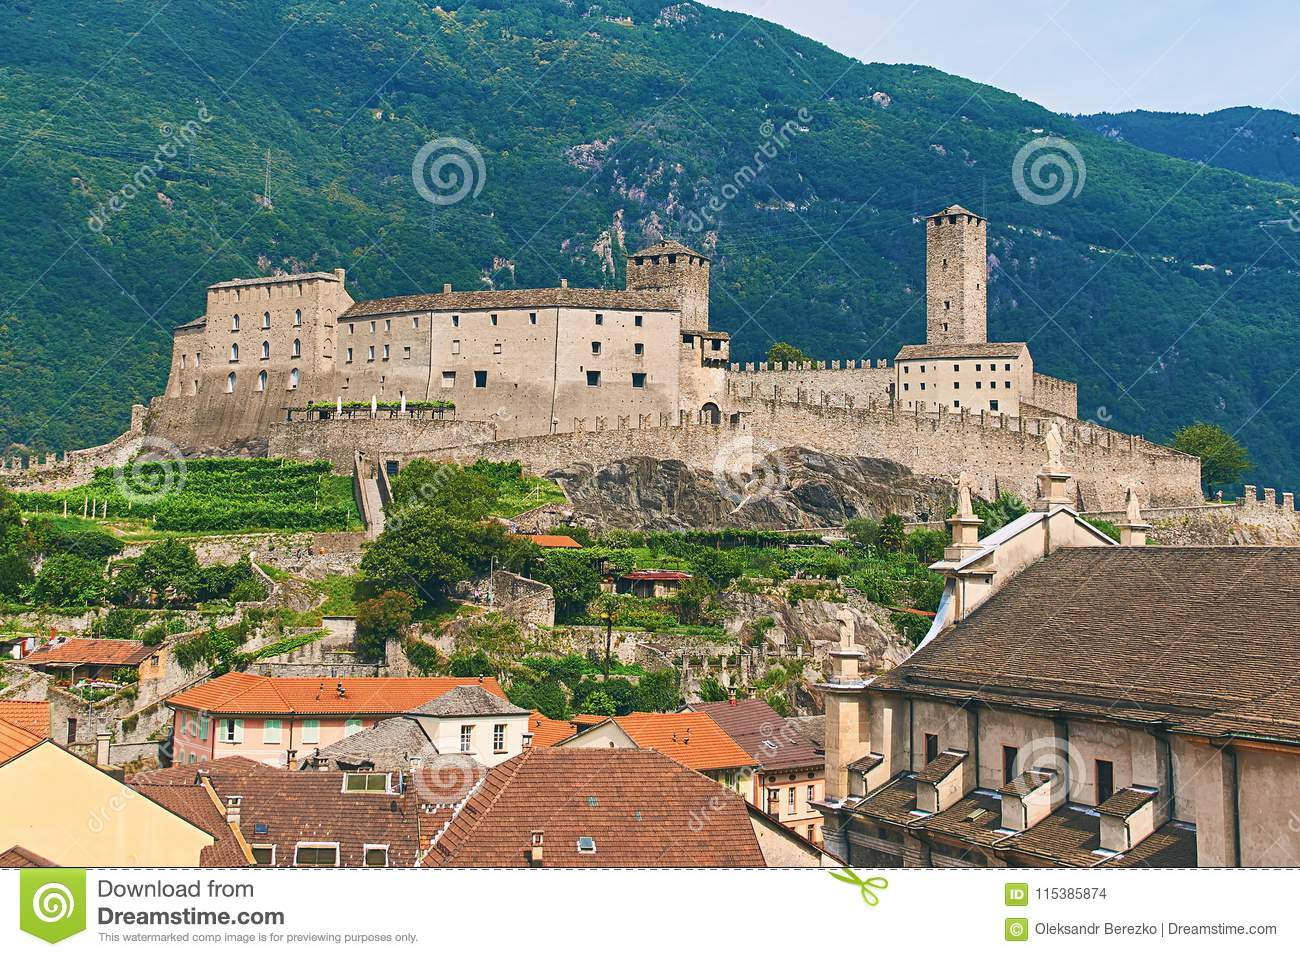 View of beautiful city of Bellinzona in Switzerland with Castelgrande castle from Montebello